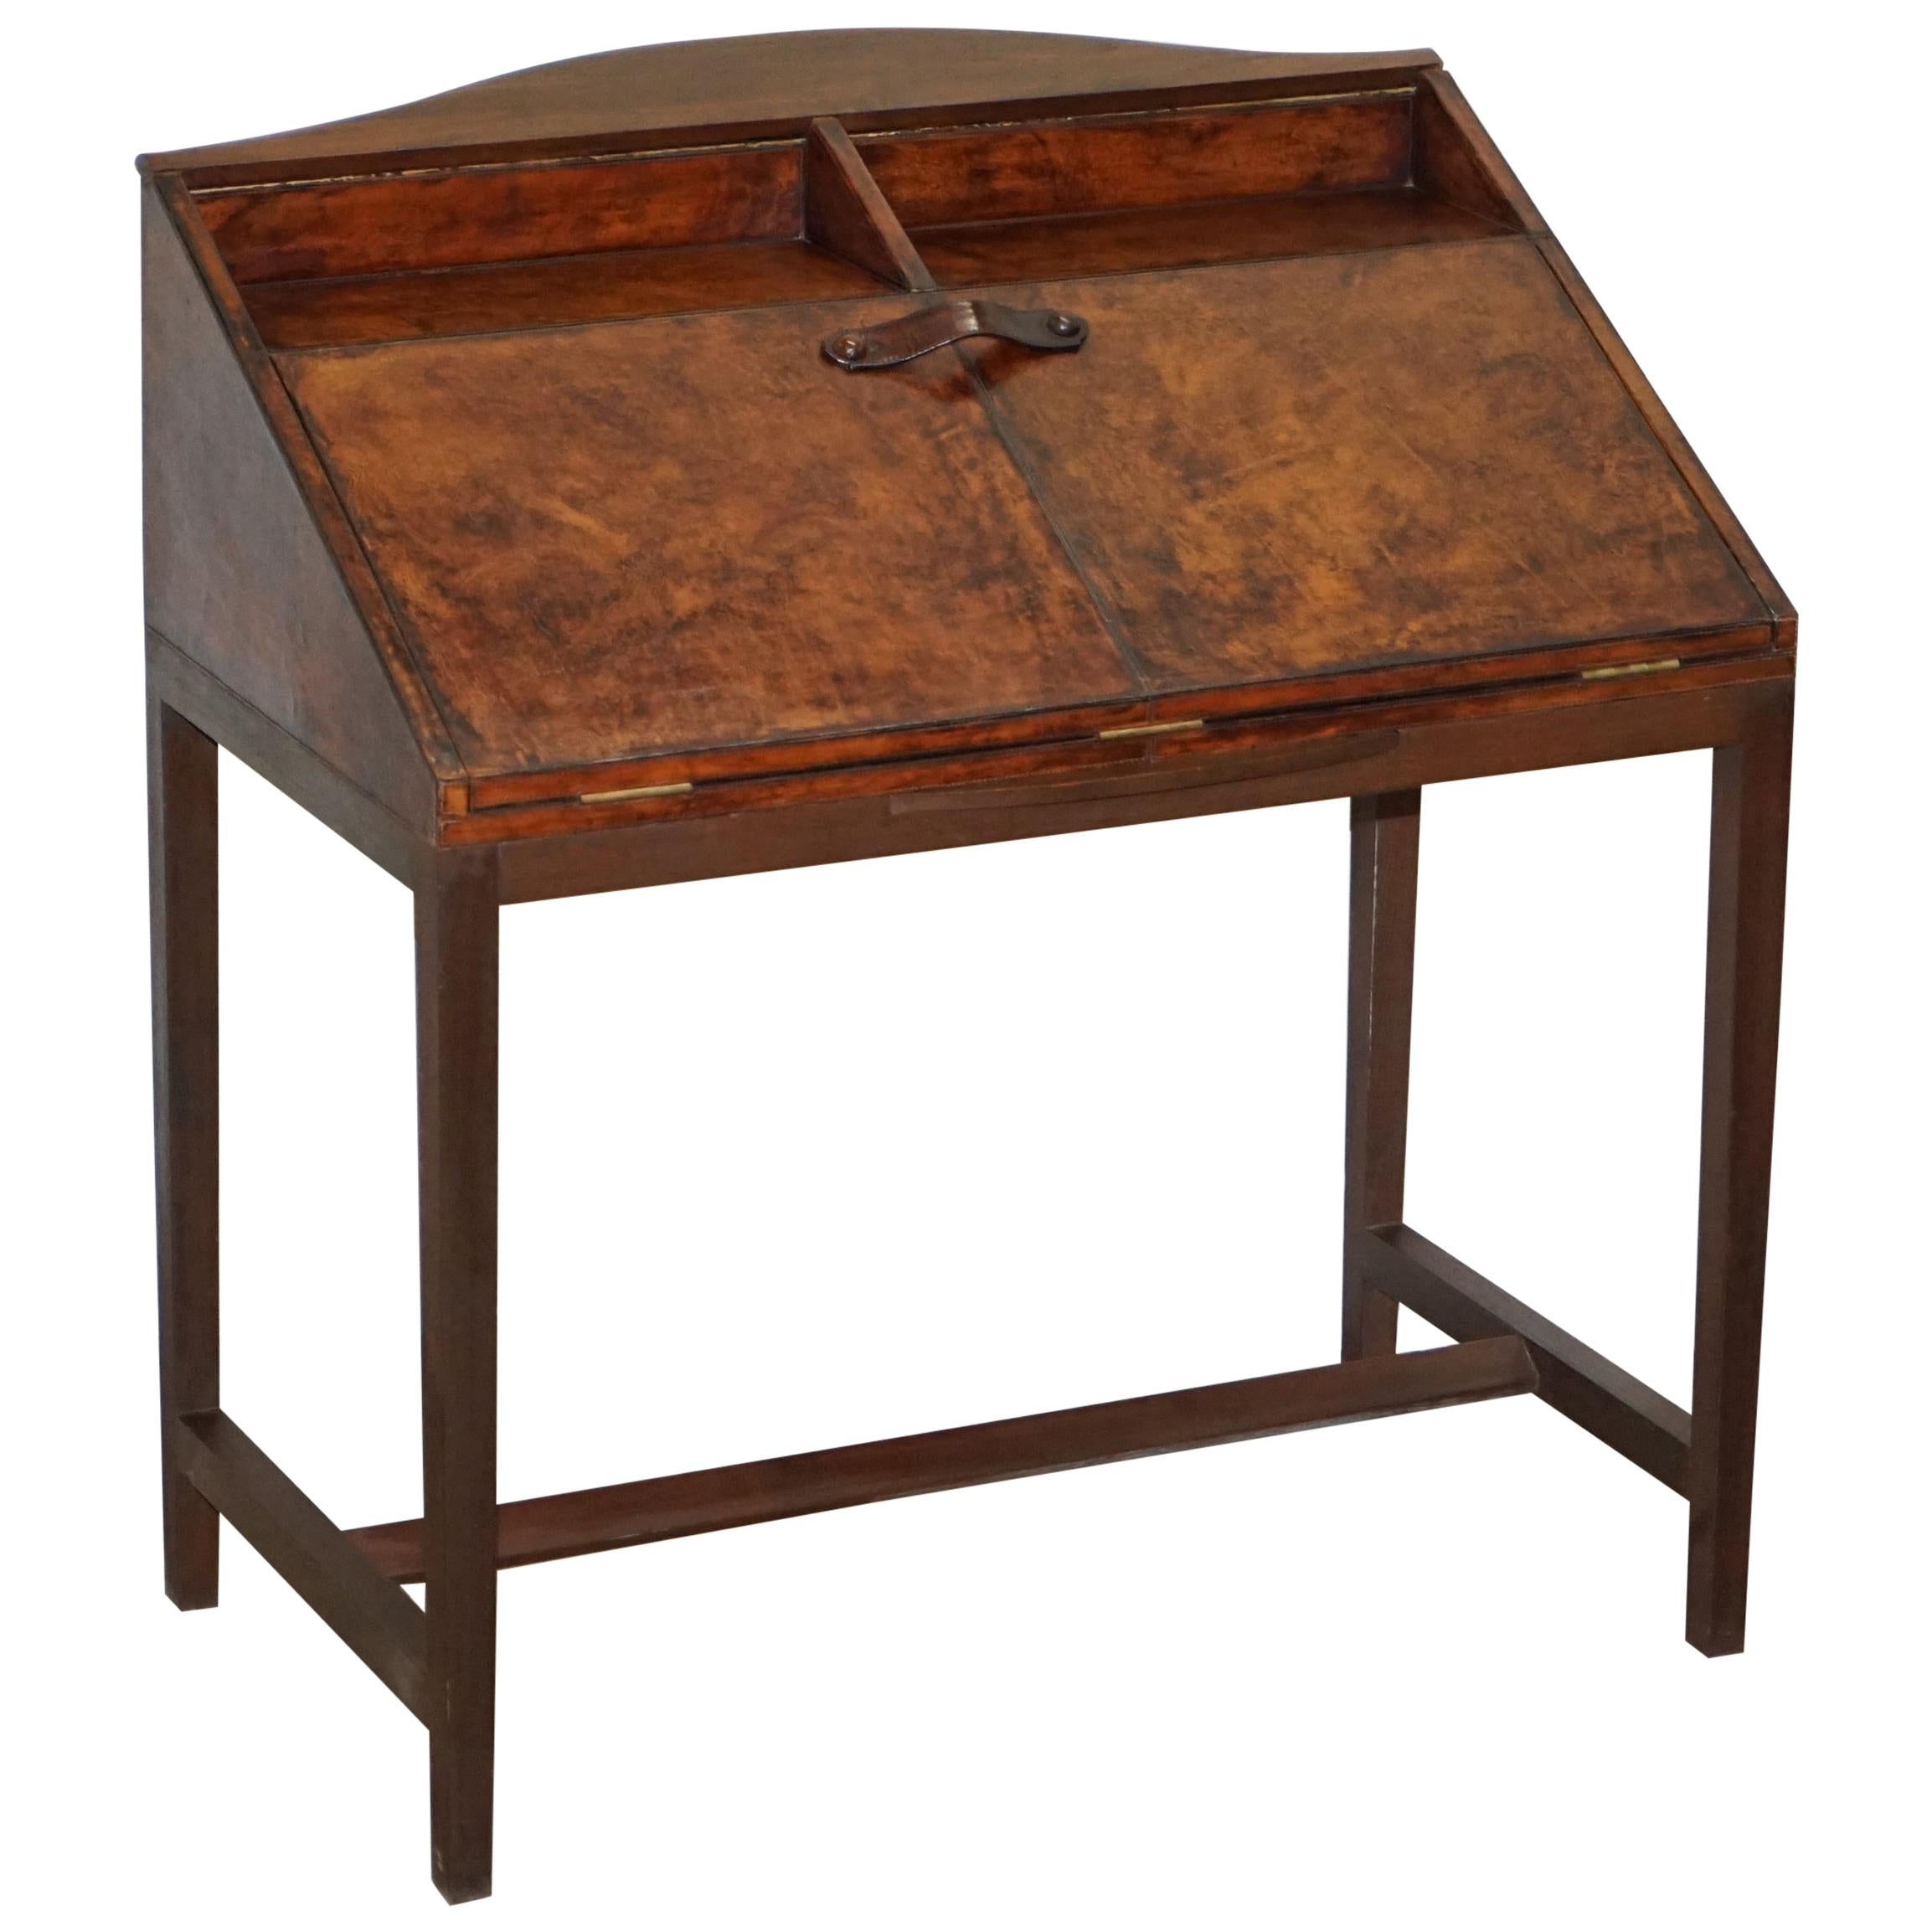 Lovely Hand Dyed Brown Leather Writing Table Desk or Bureau with Twin Drawers